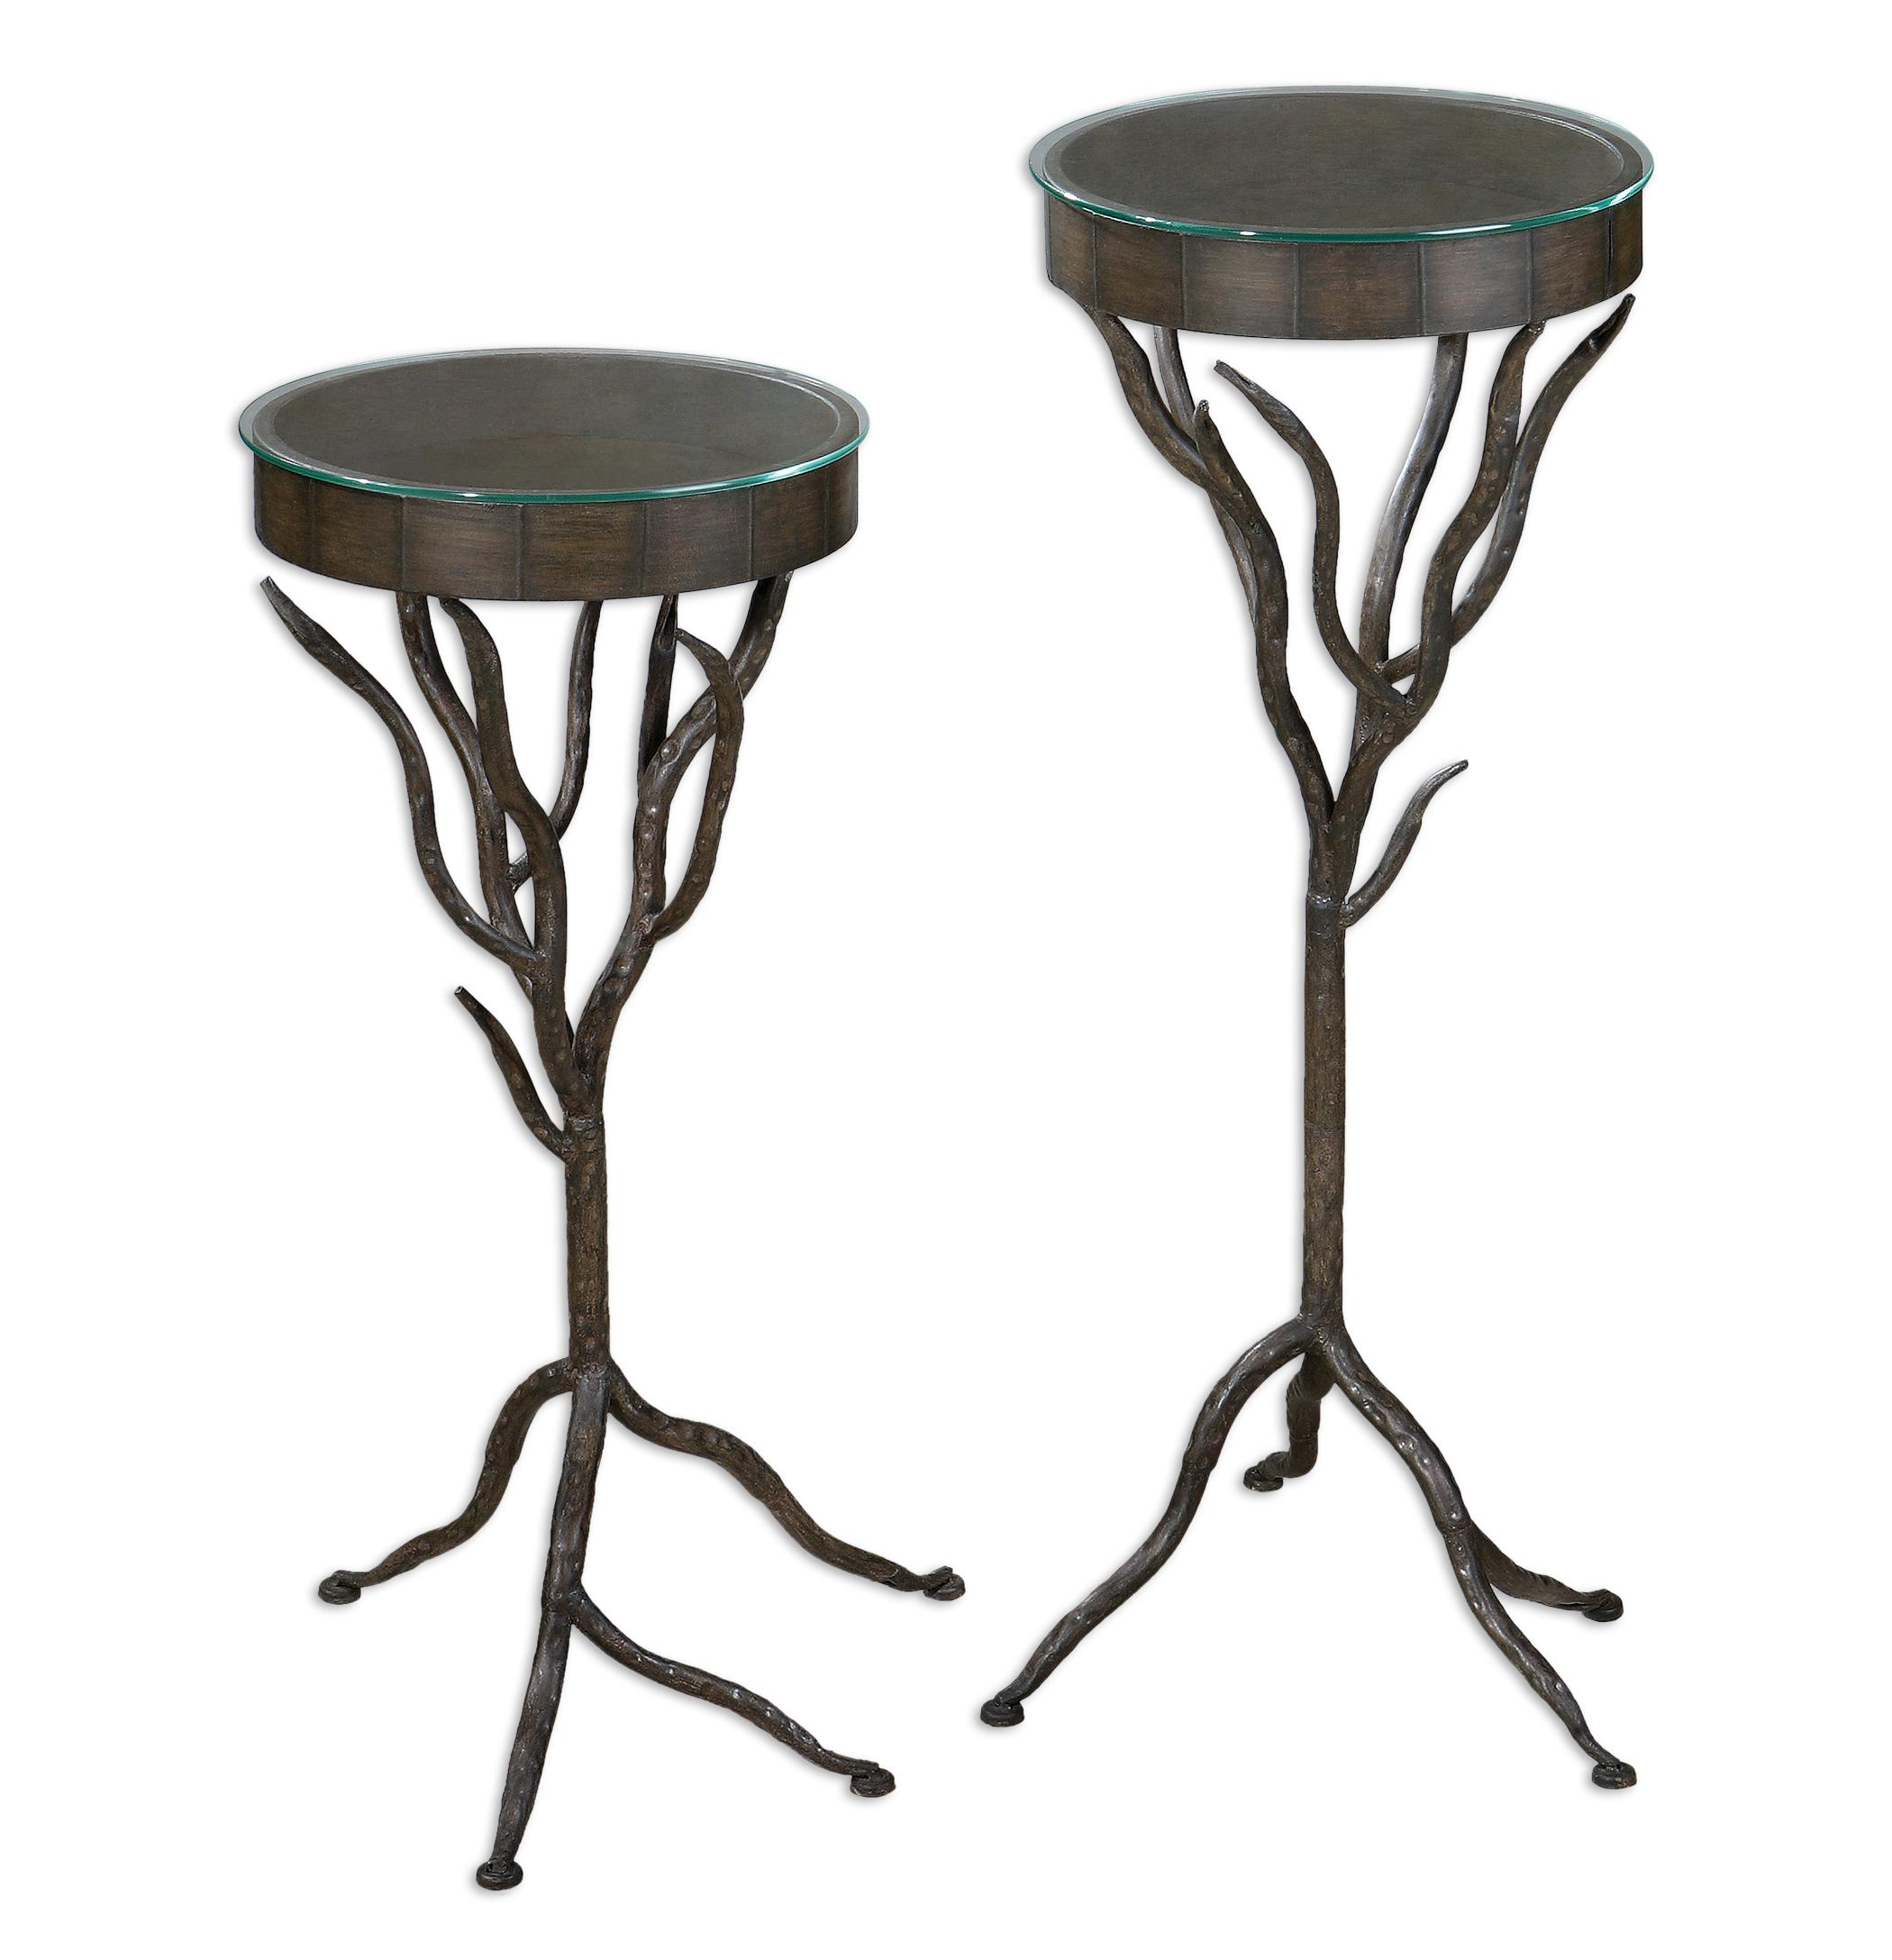 Uttermost Accent Furniture Esher Plant Stands Set of 2 - Item Number: 24316